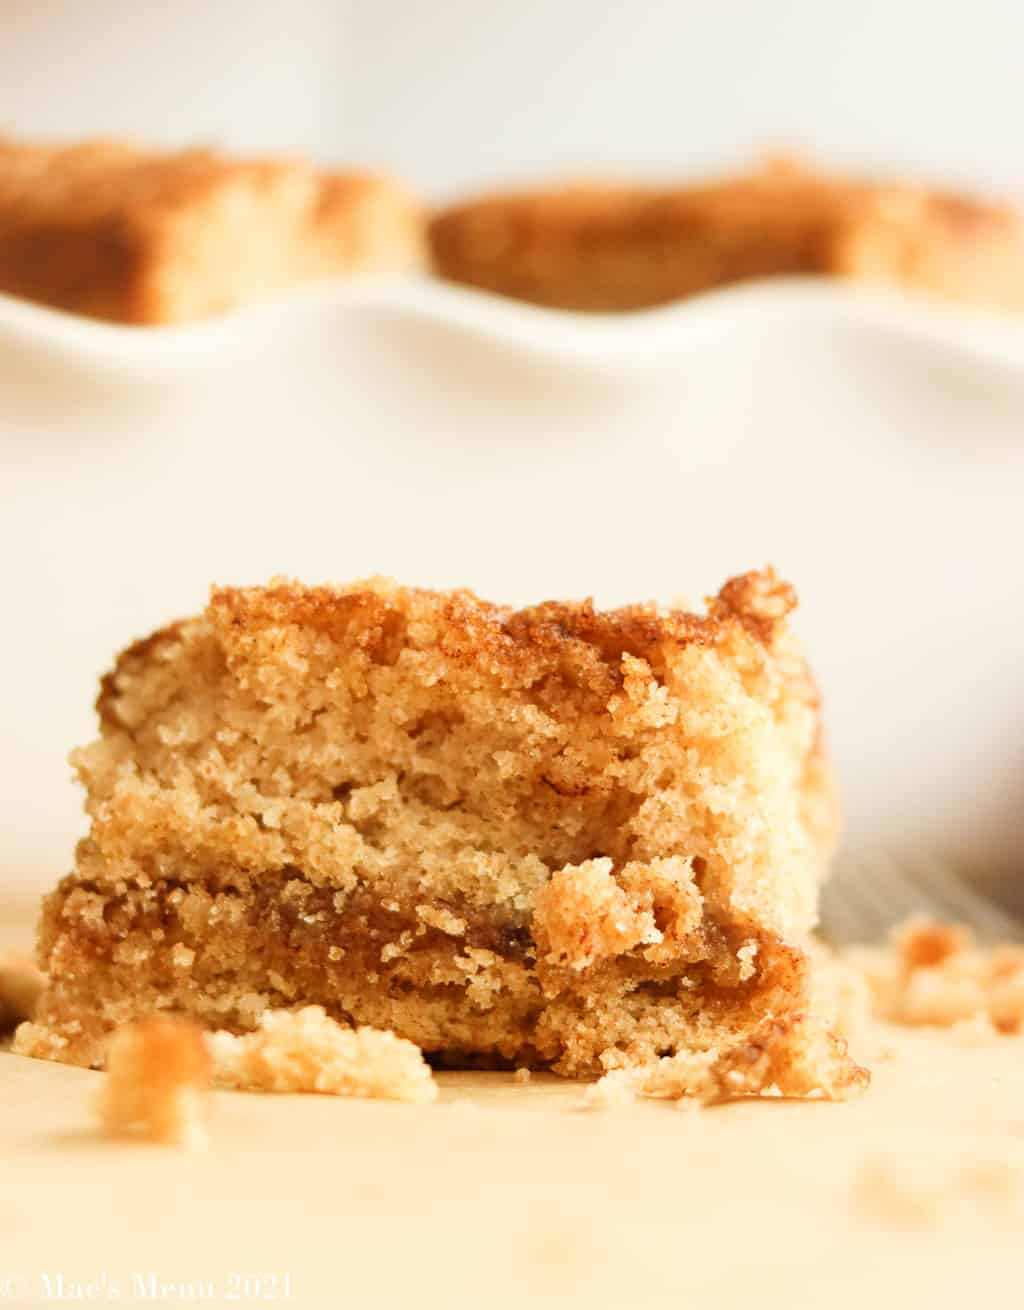 An up-close shot of a piece of coffee cake